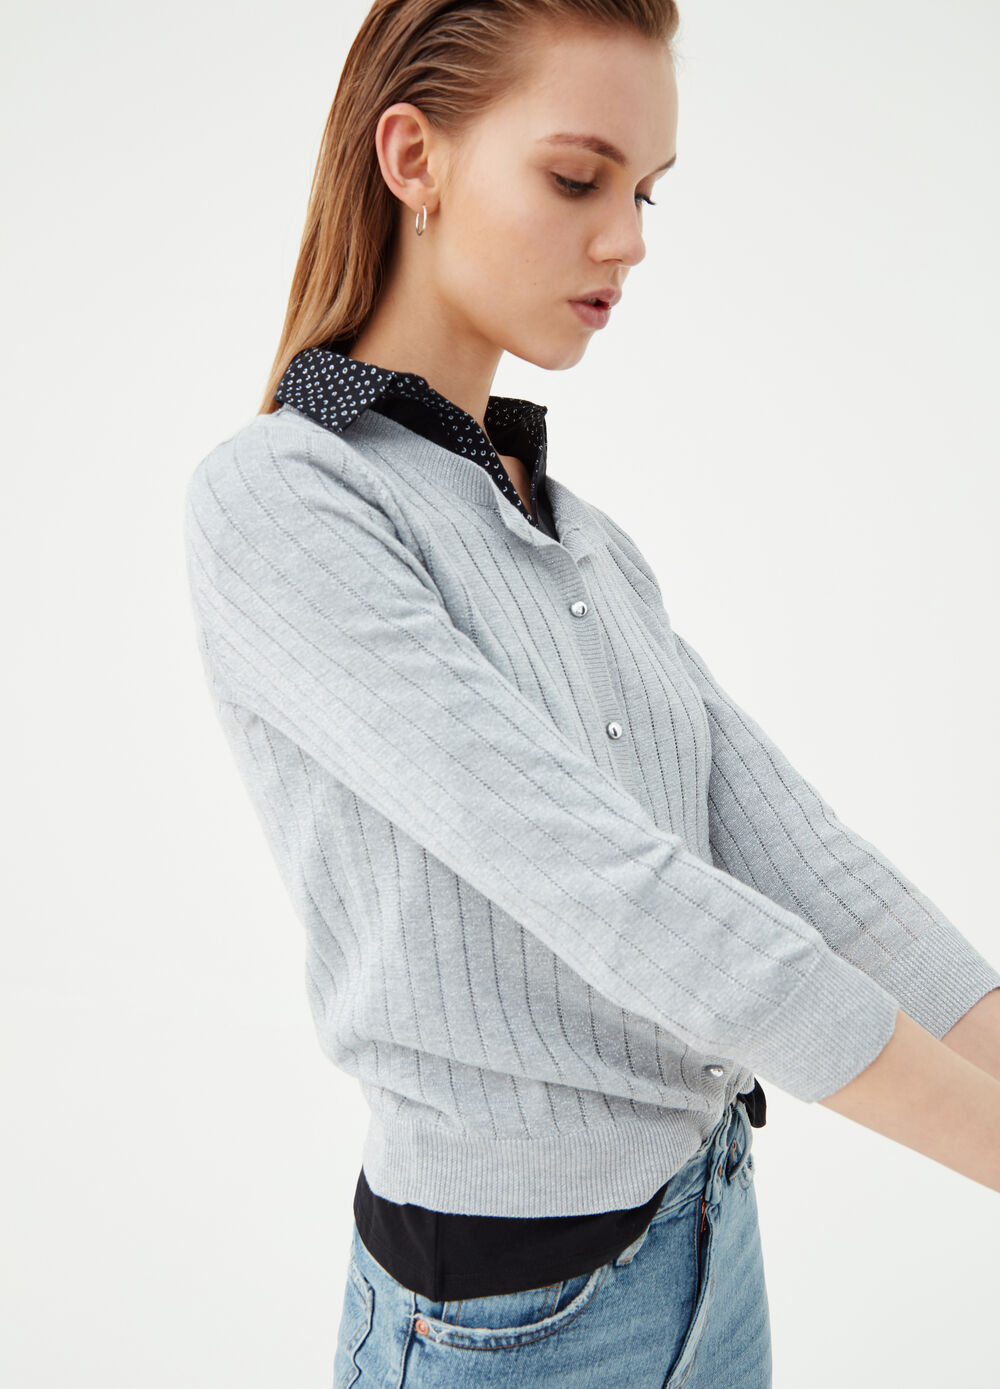 Cardigan with knitted lurex and striped texture